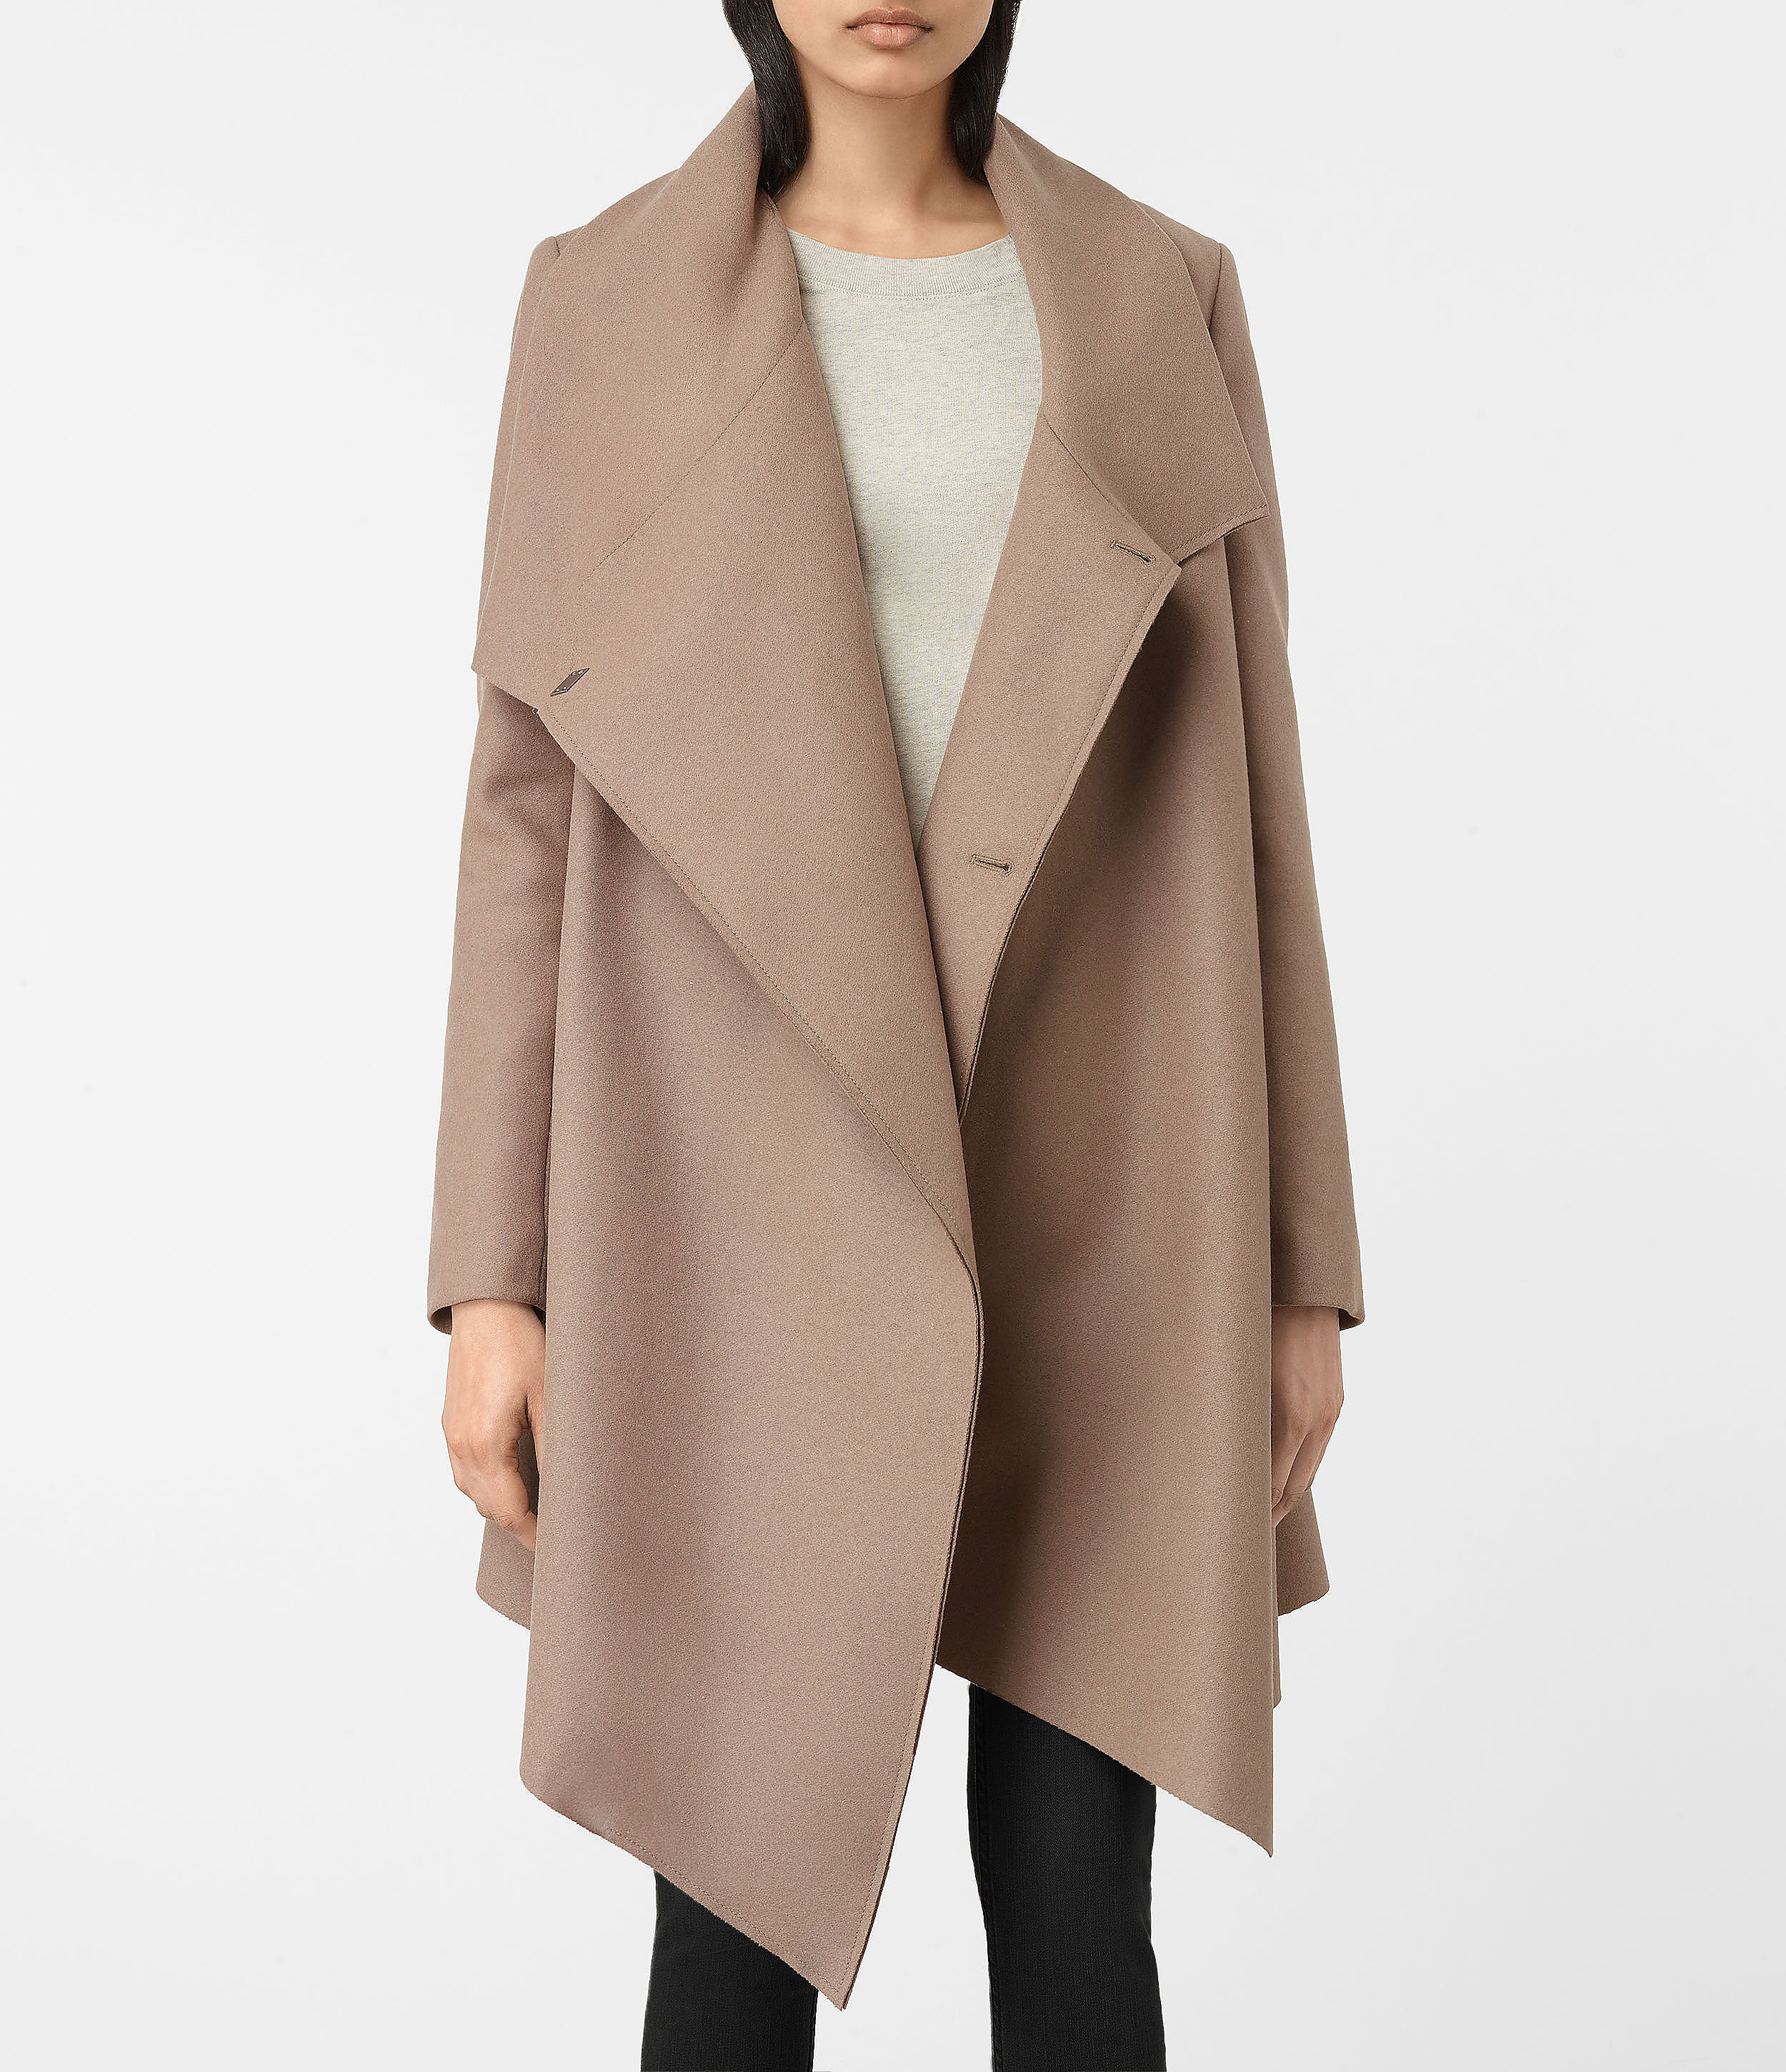 City monument coat 2